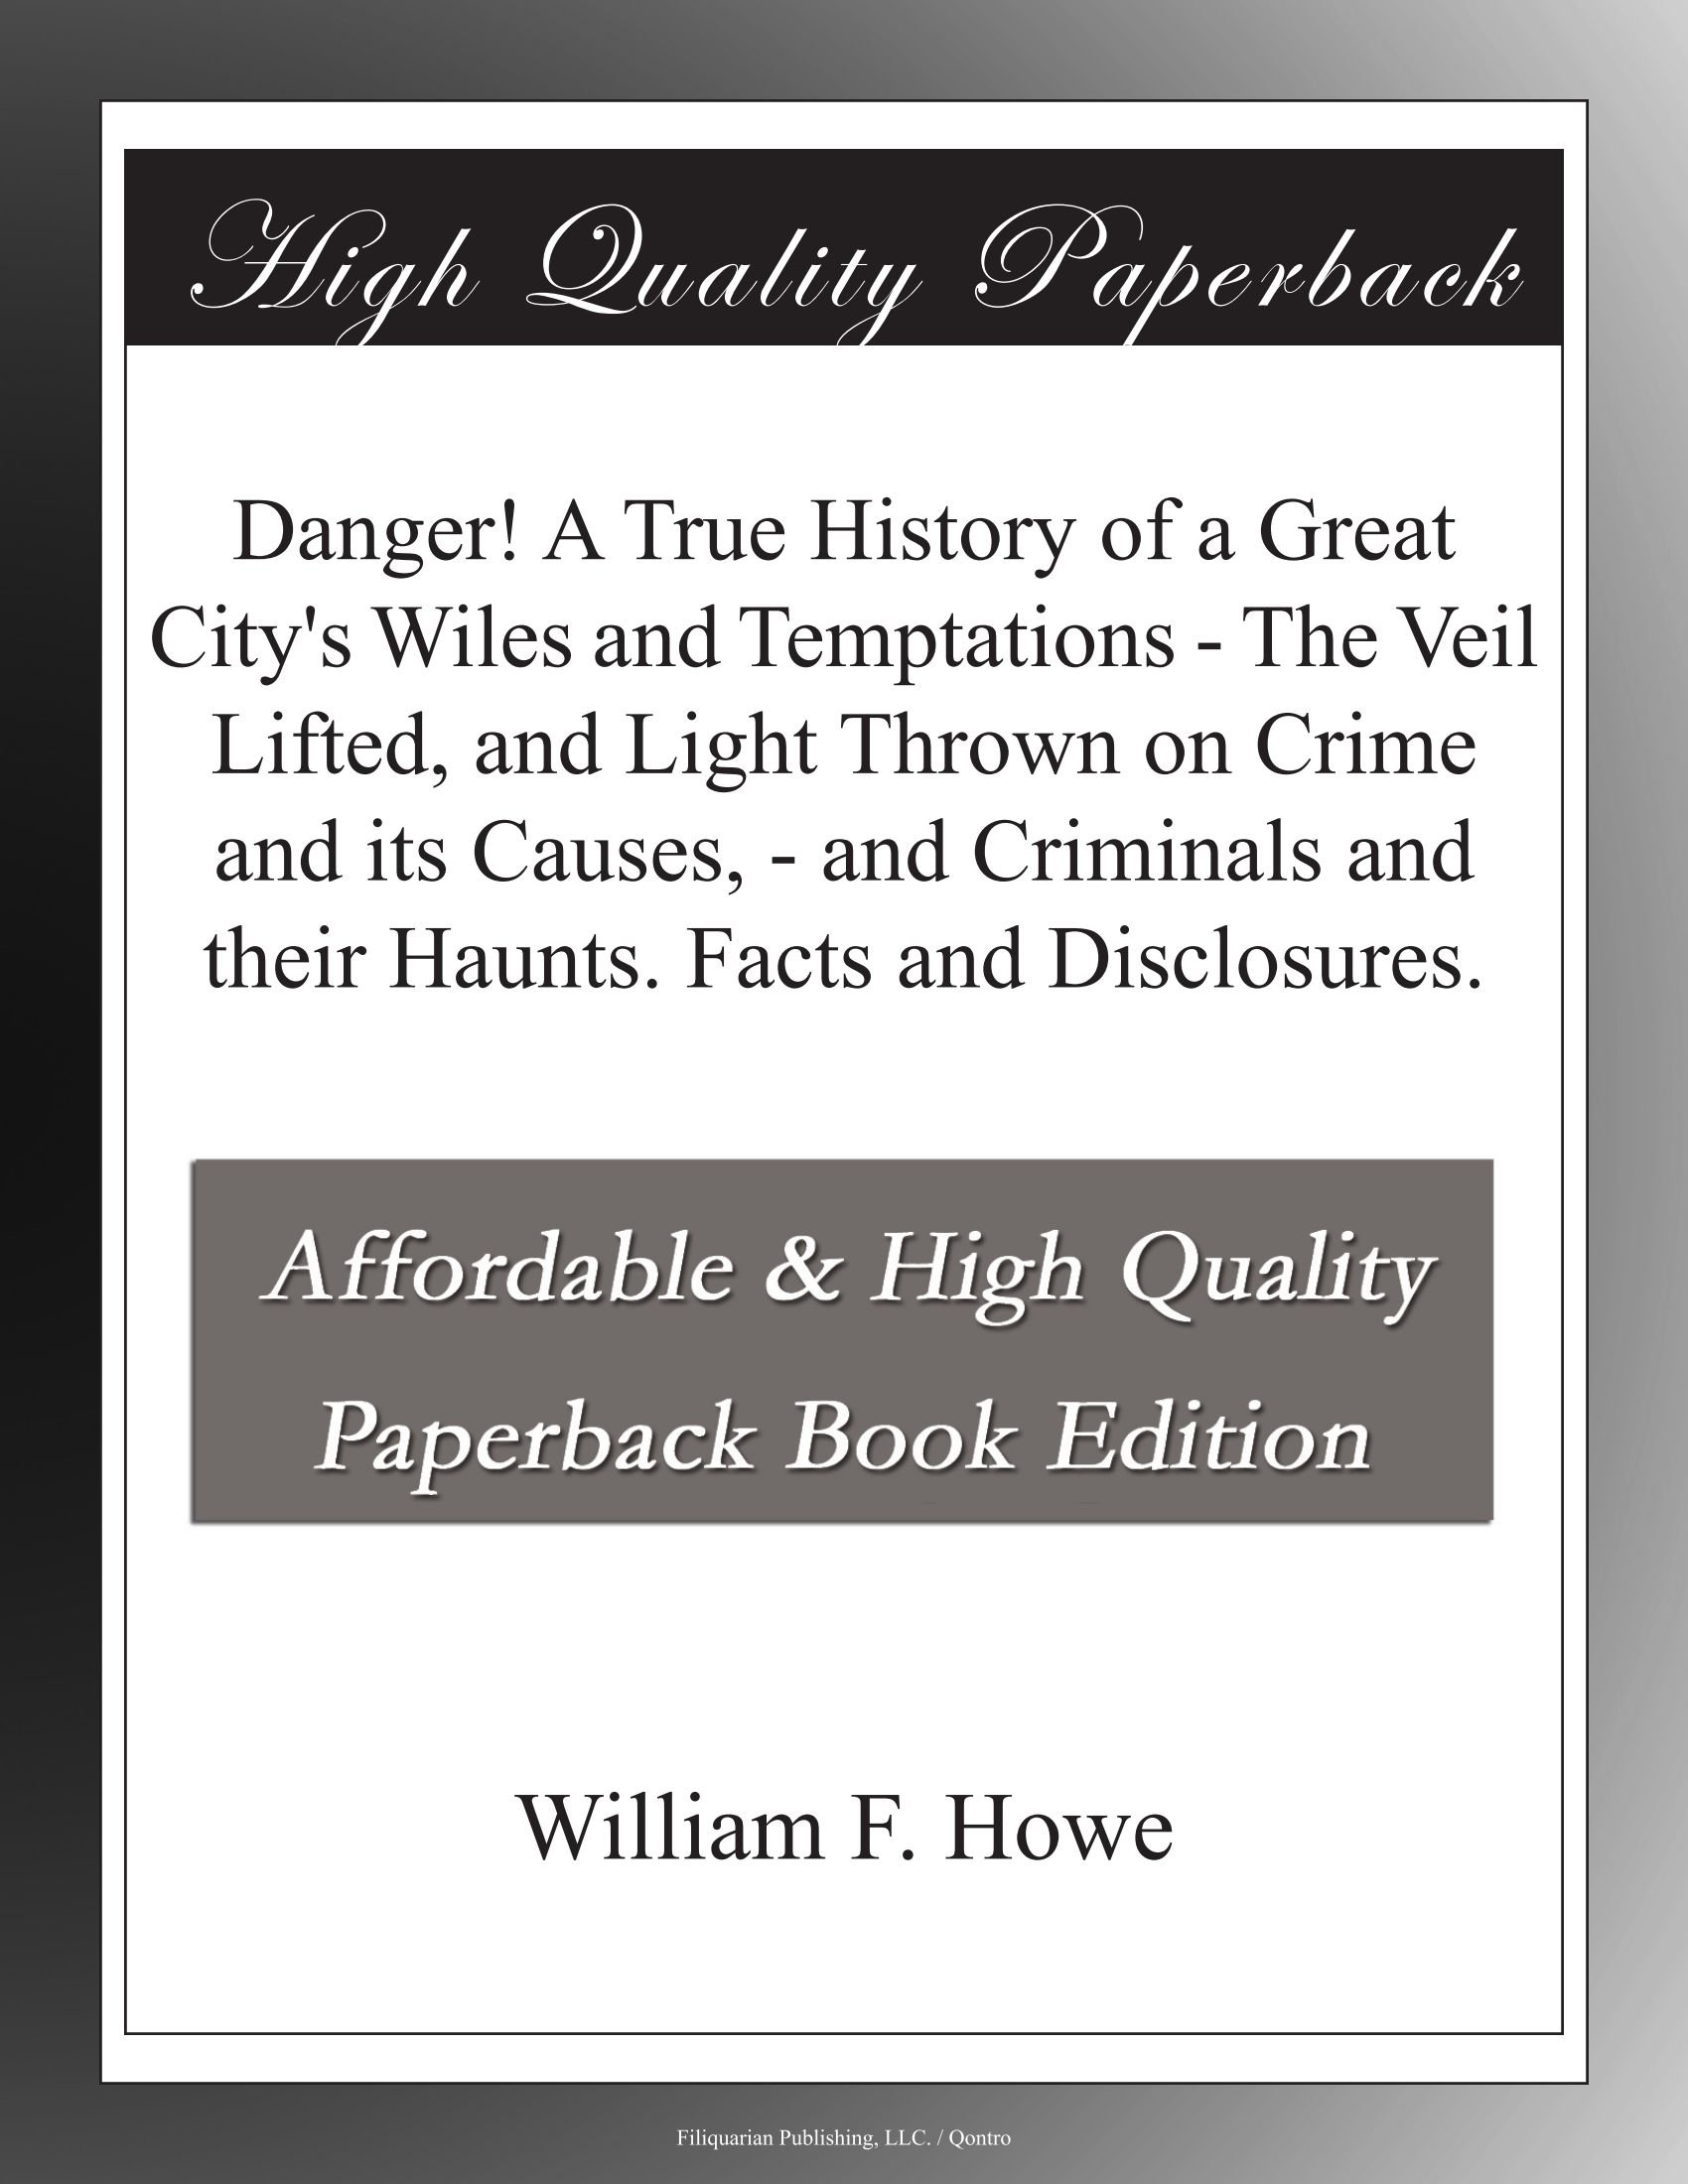 Danger History Great Citys Temptations product image